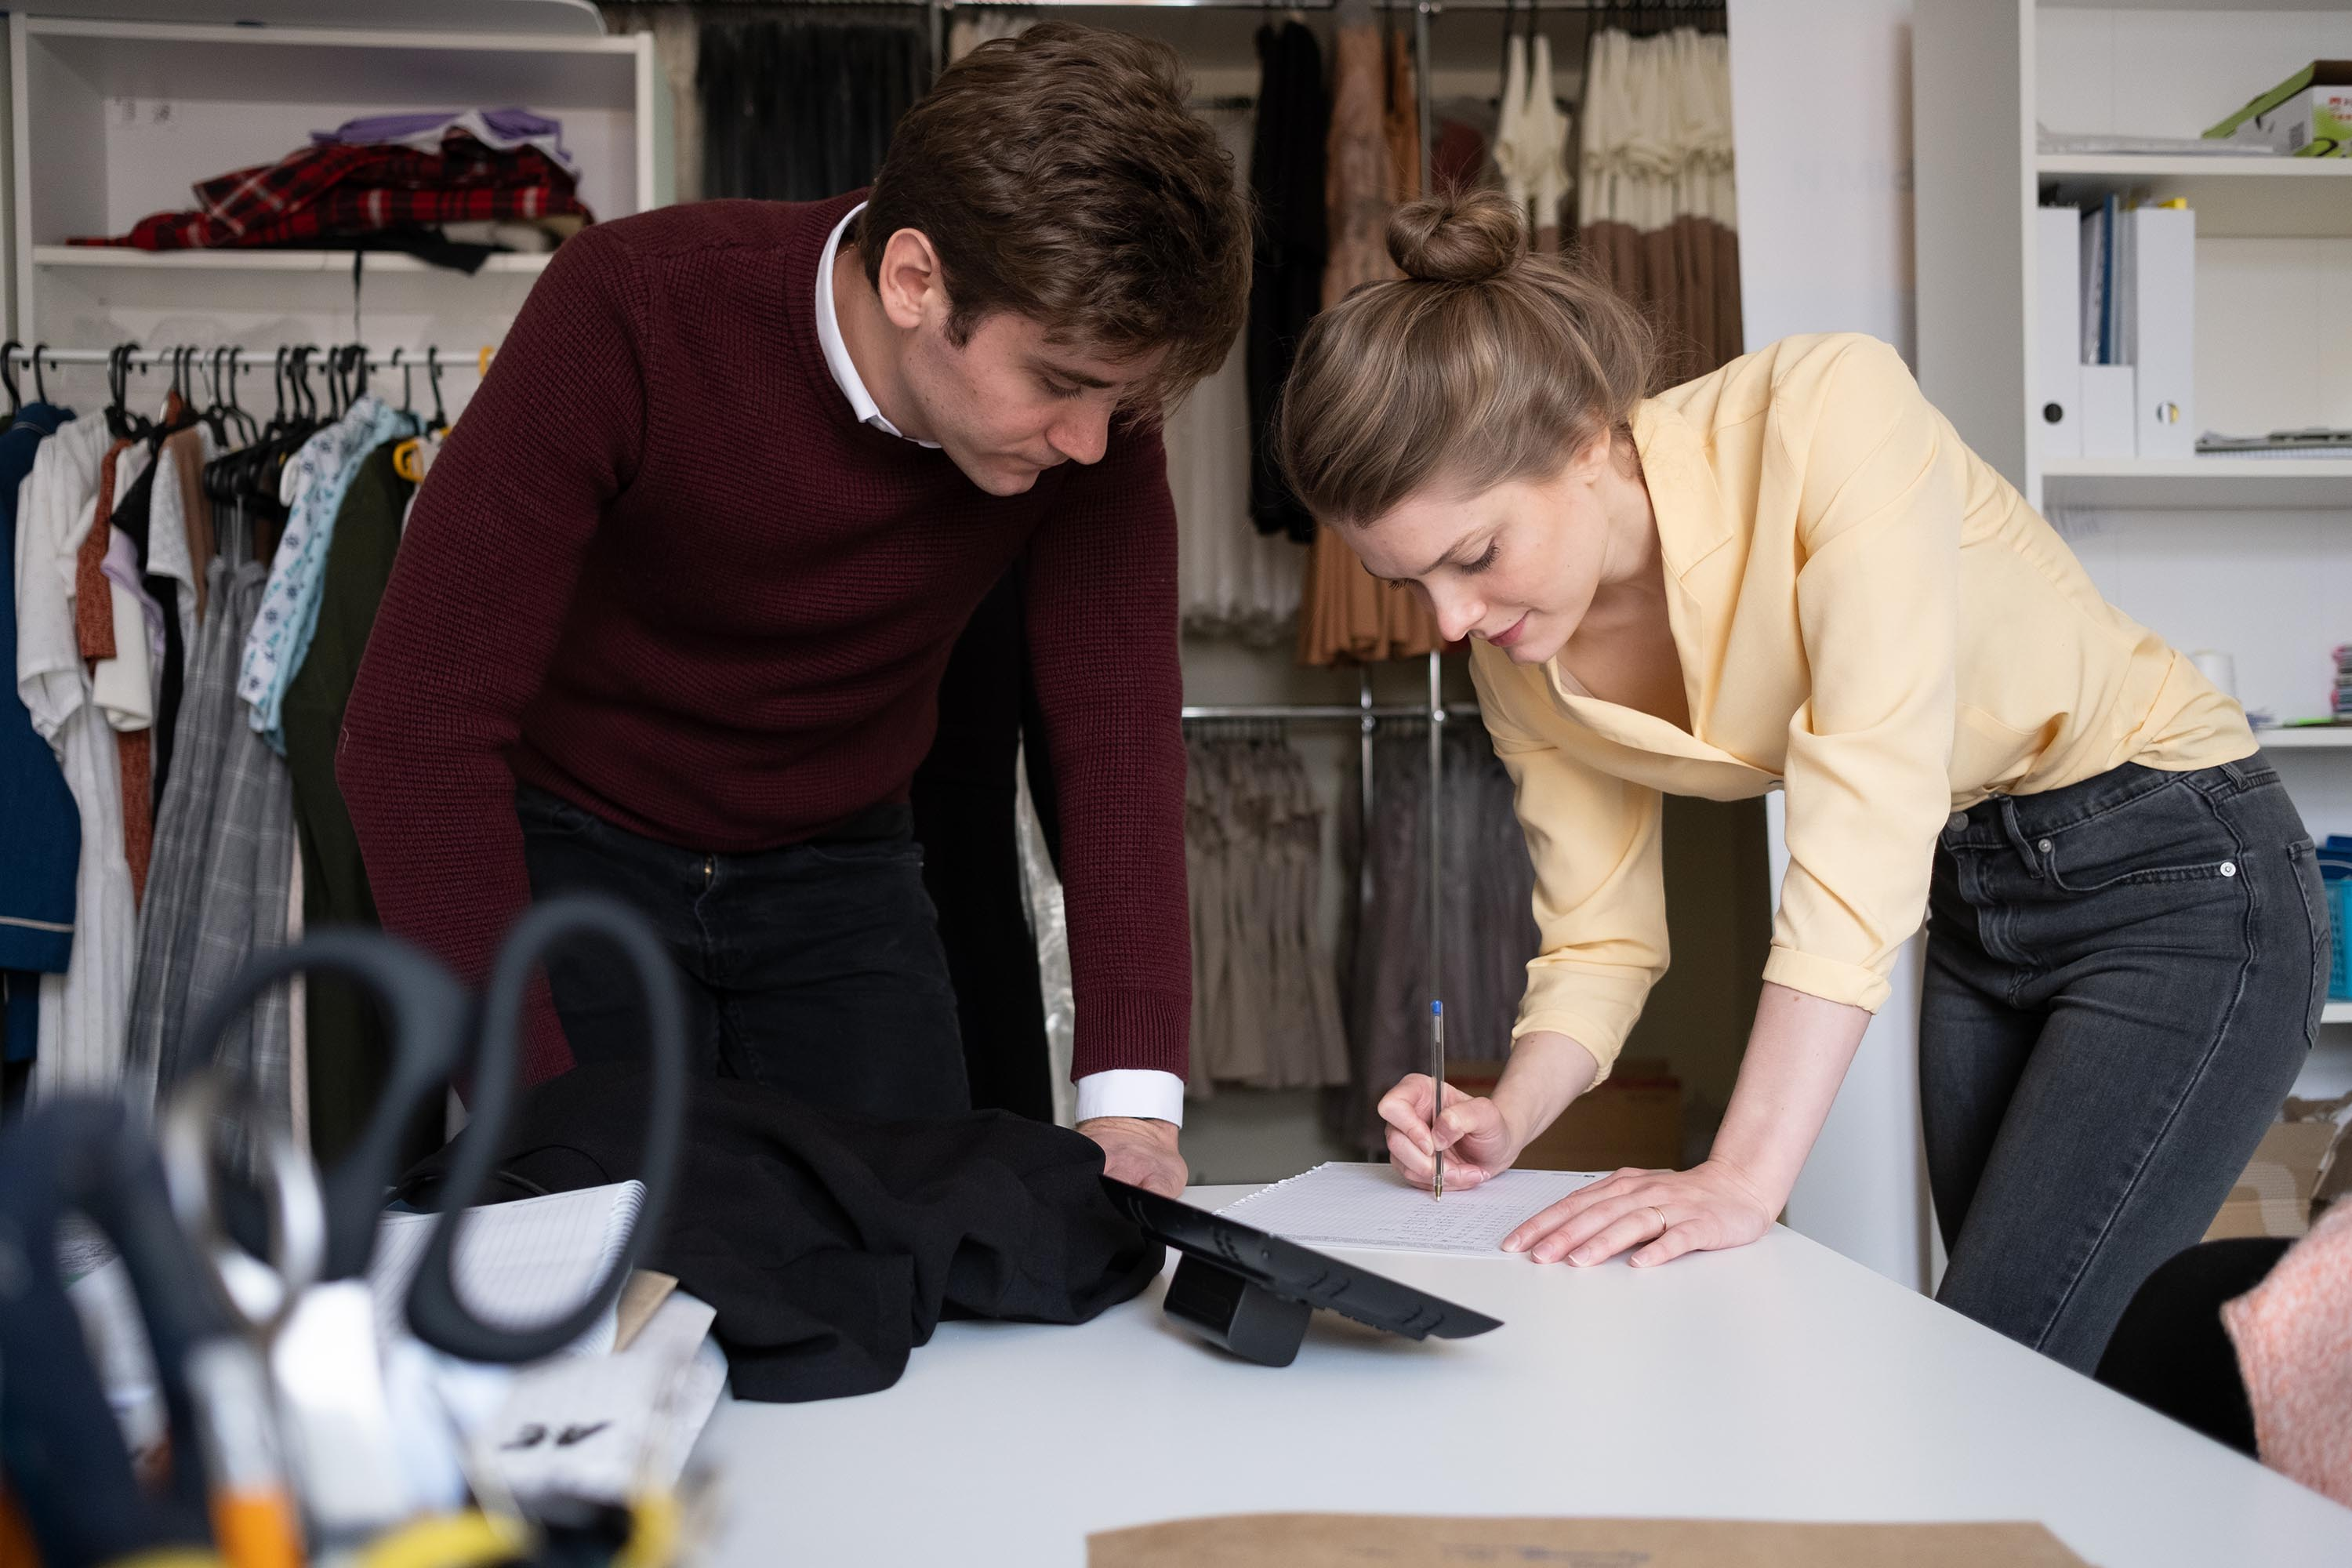 Kelly and her husband Alexander working together on new designs.